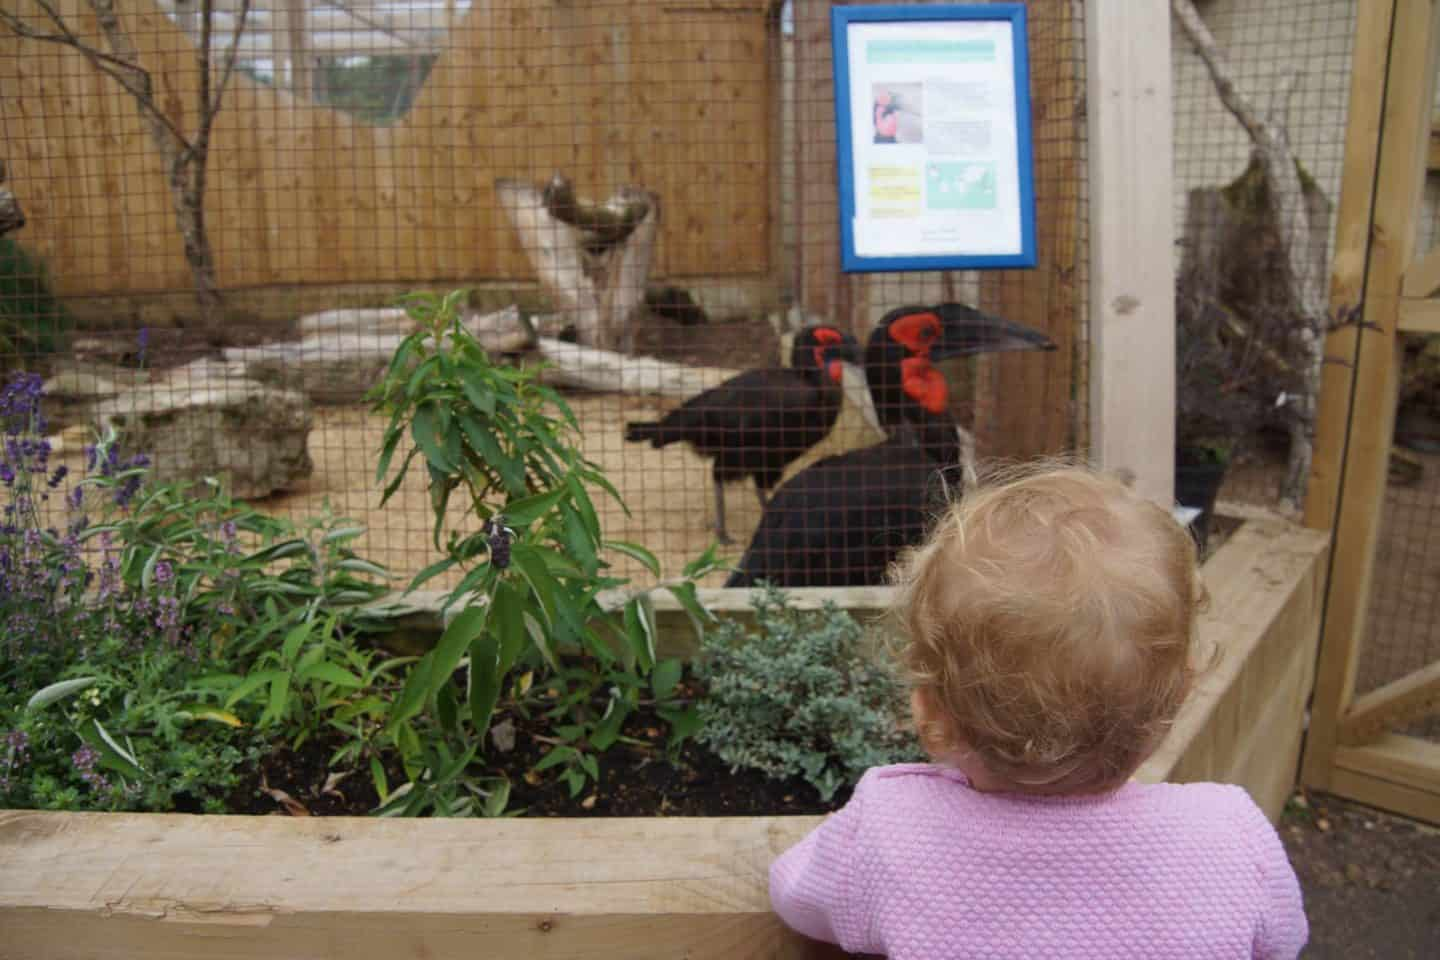 What to do in Bourton on the Water and birdland with kids